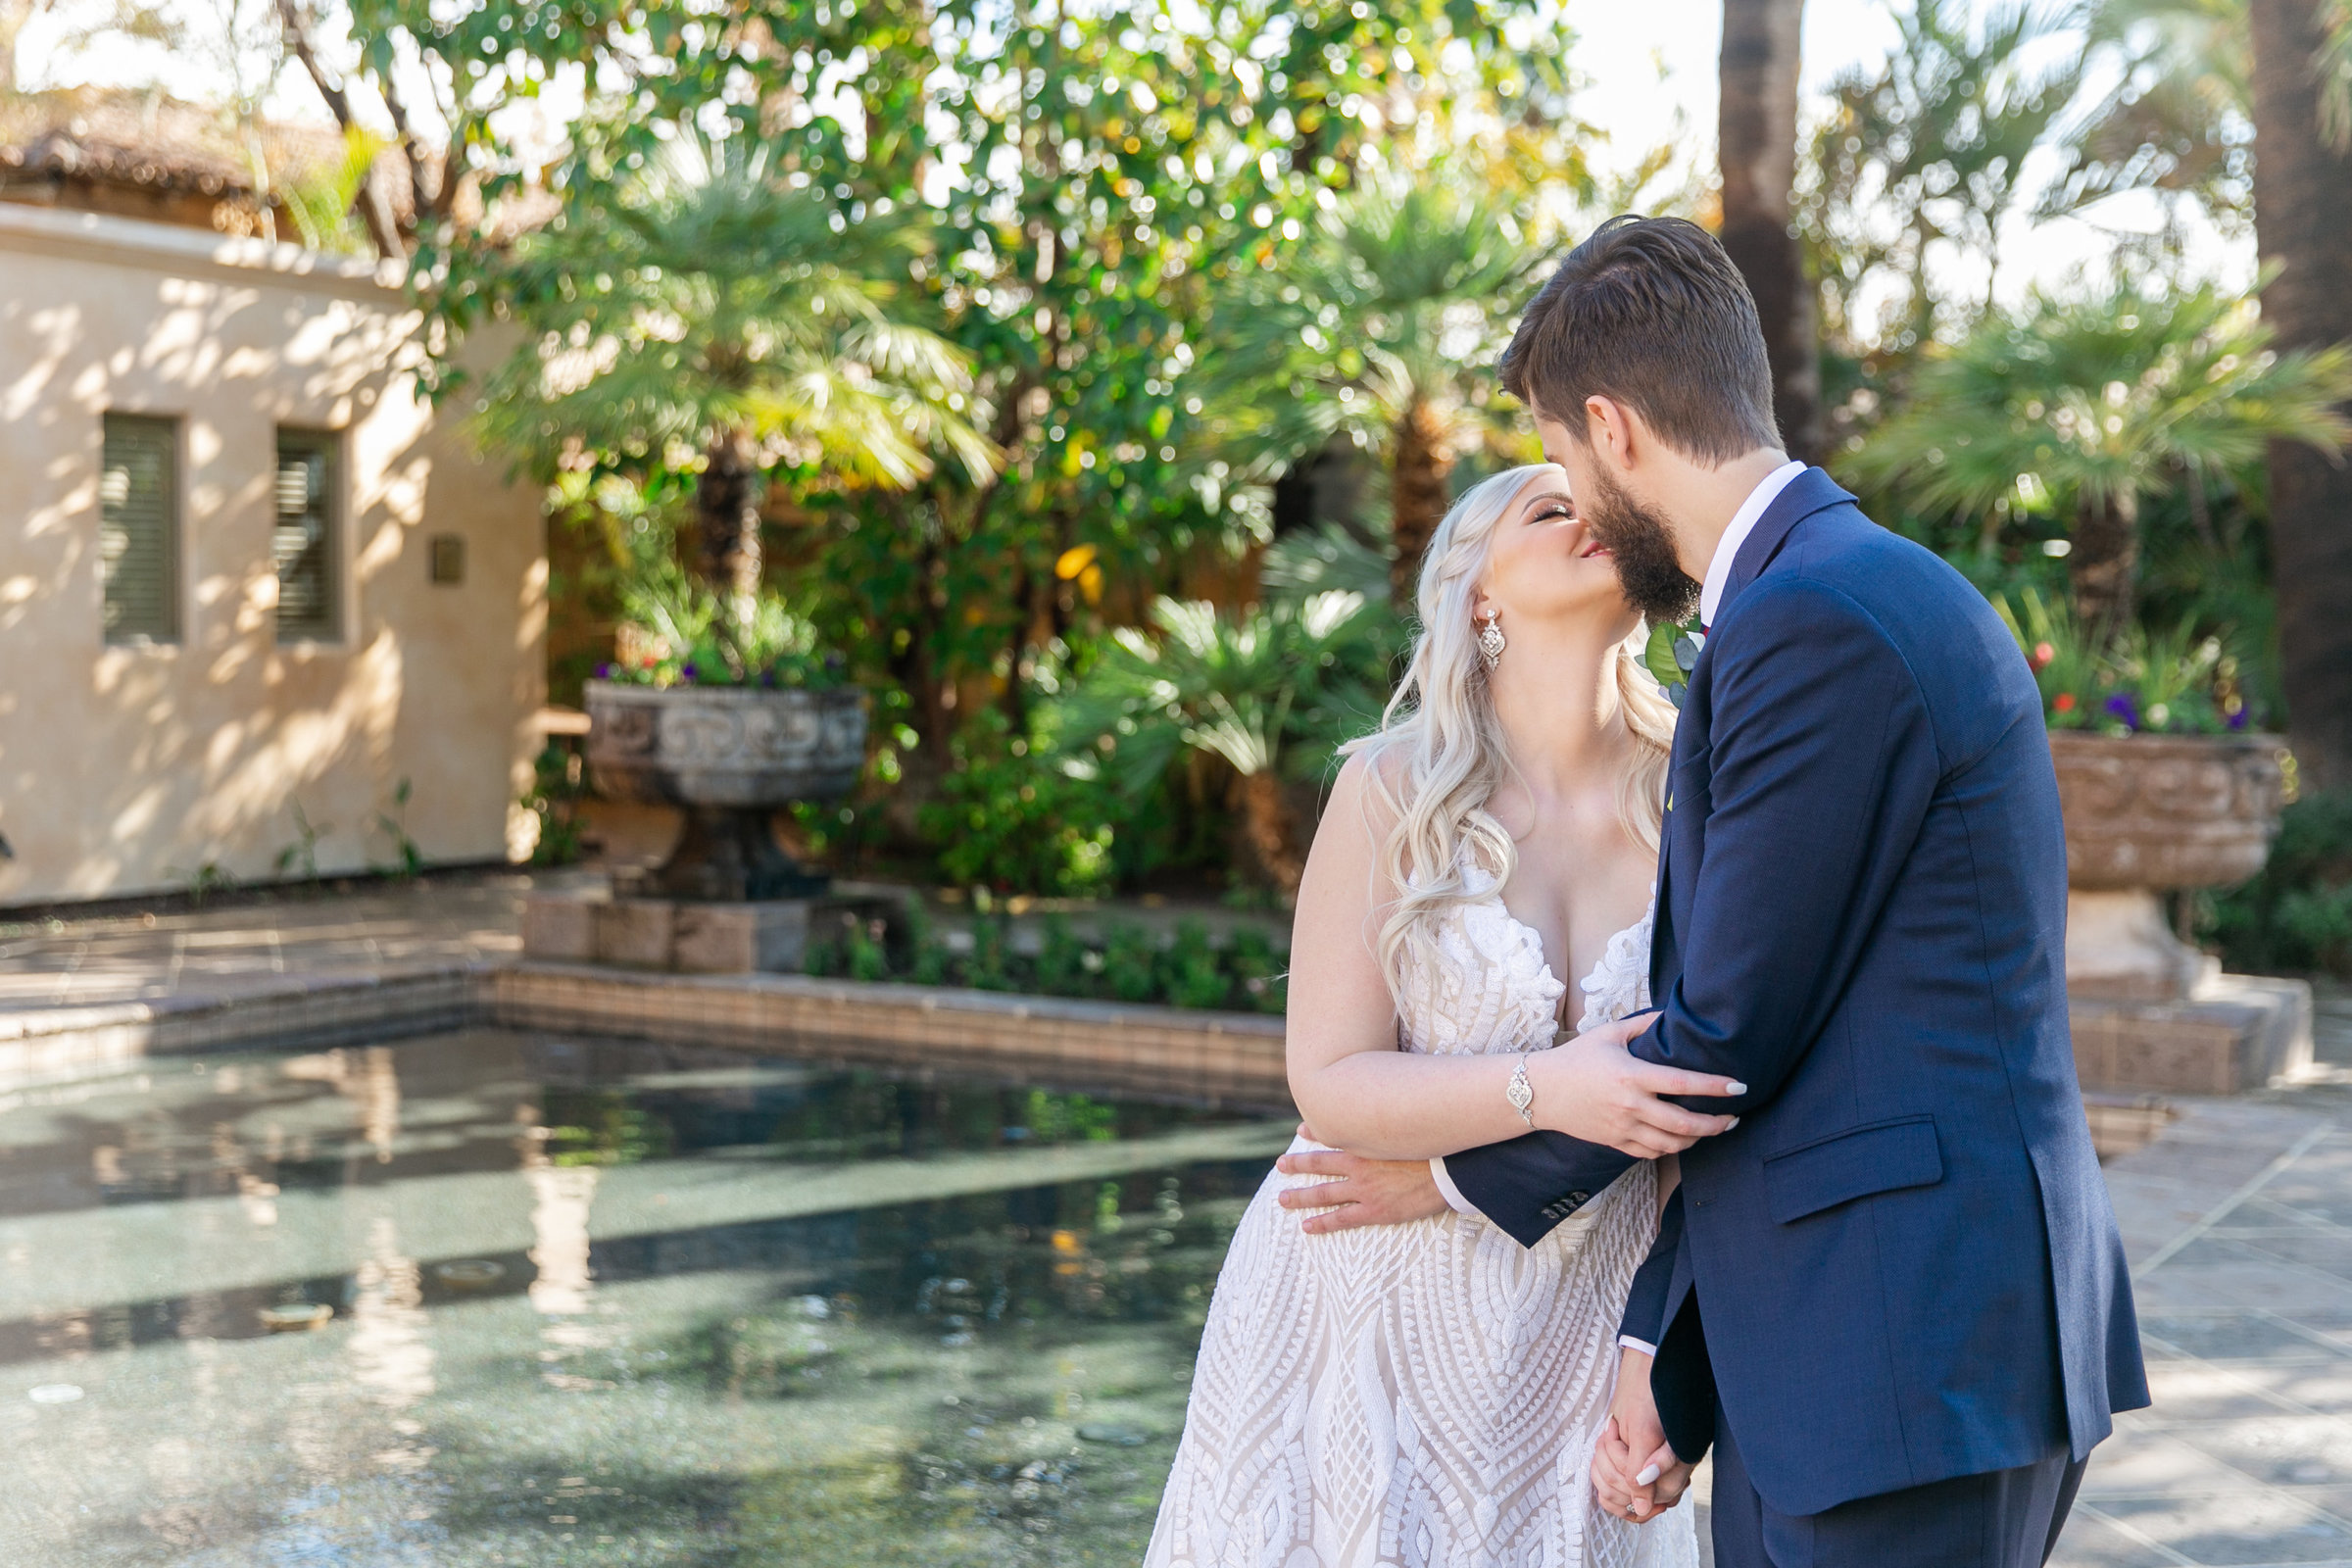 Karlie Colleen Photography - The Royal Palms Wedding - Some Like It Classic - Alex & Sam-143